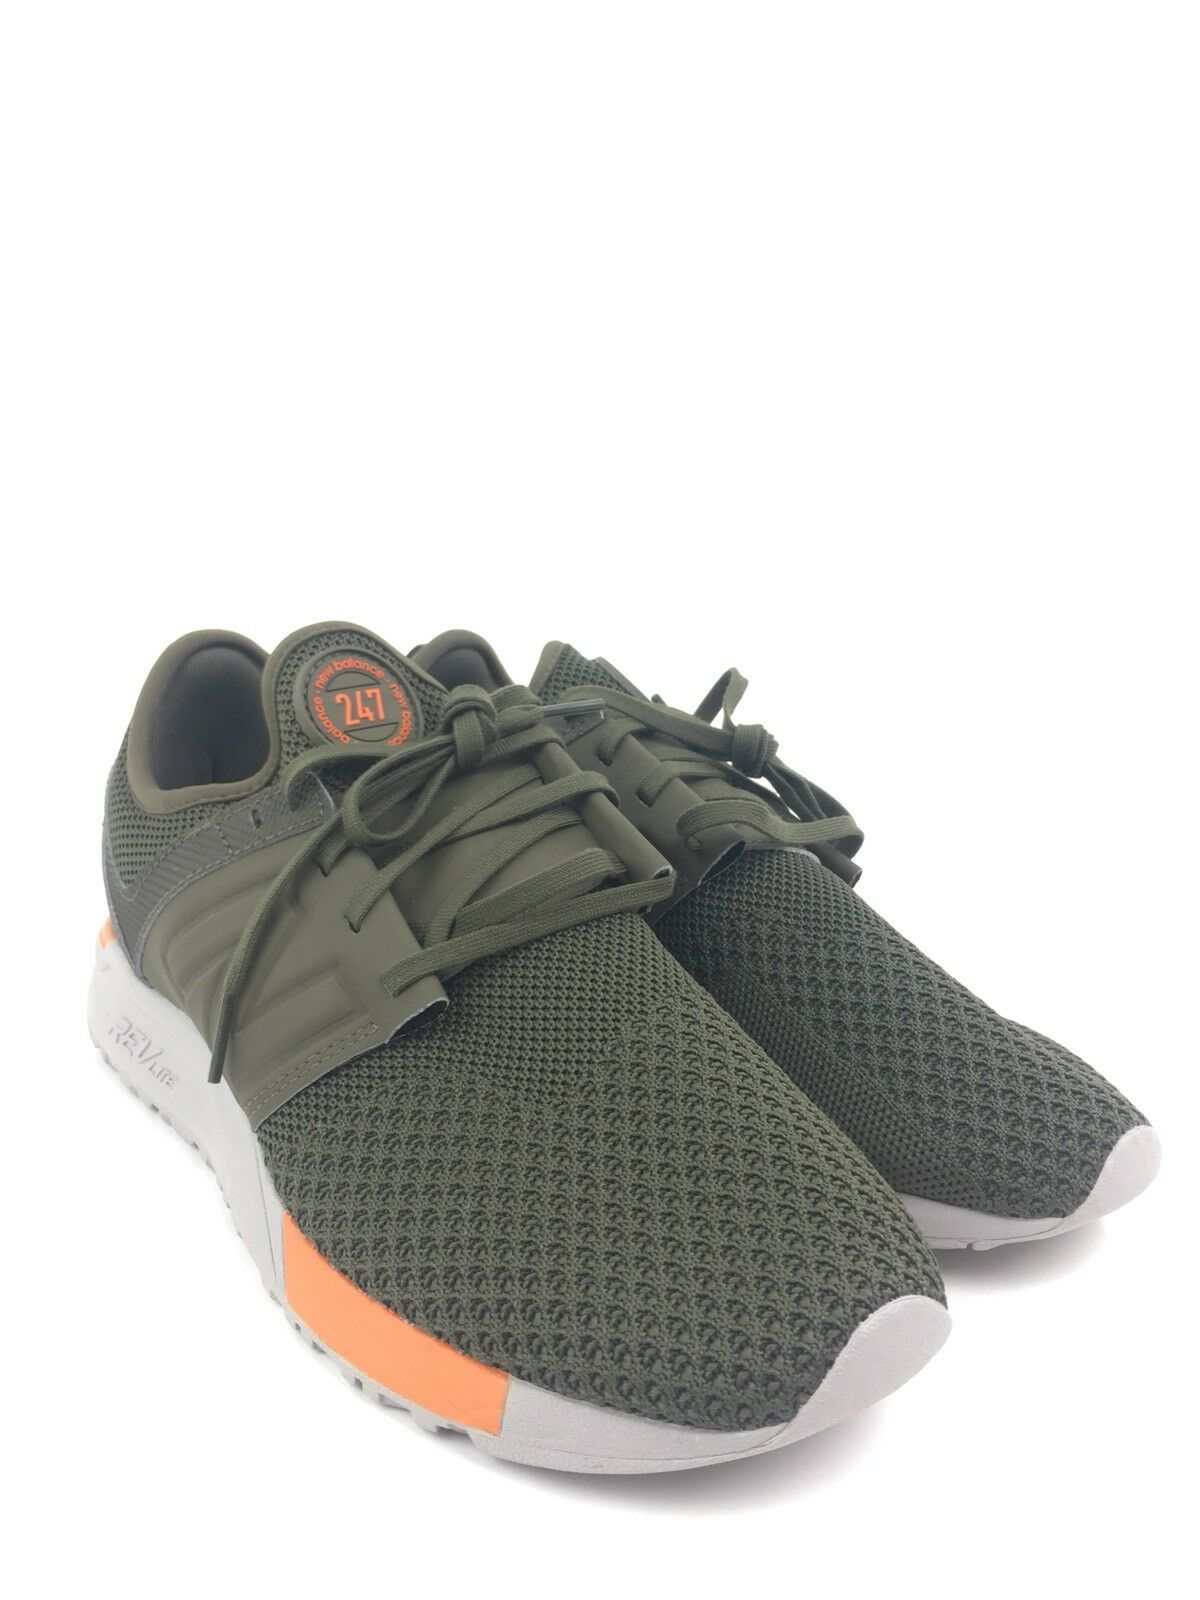 New Balance 247 Olive Winter Knit Running shoes Men's Size